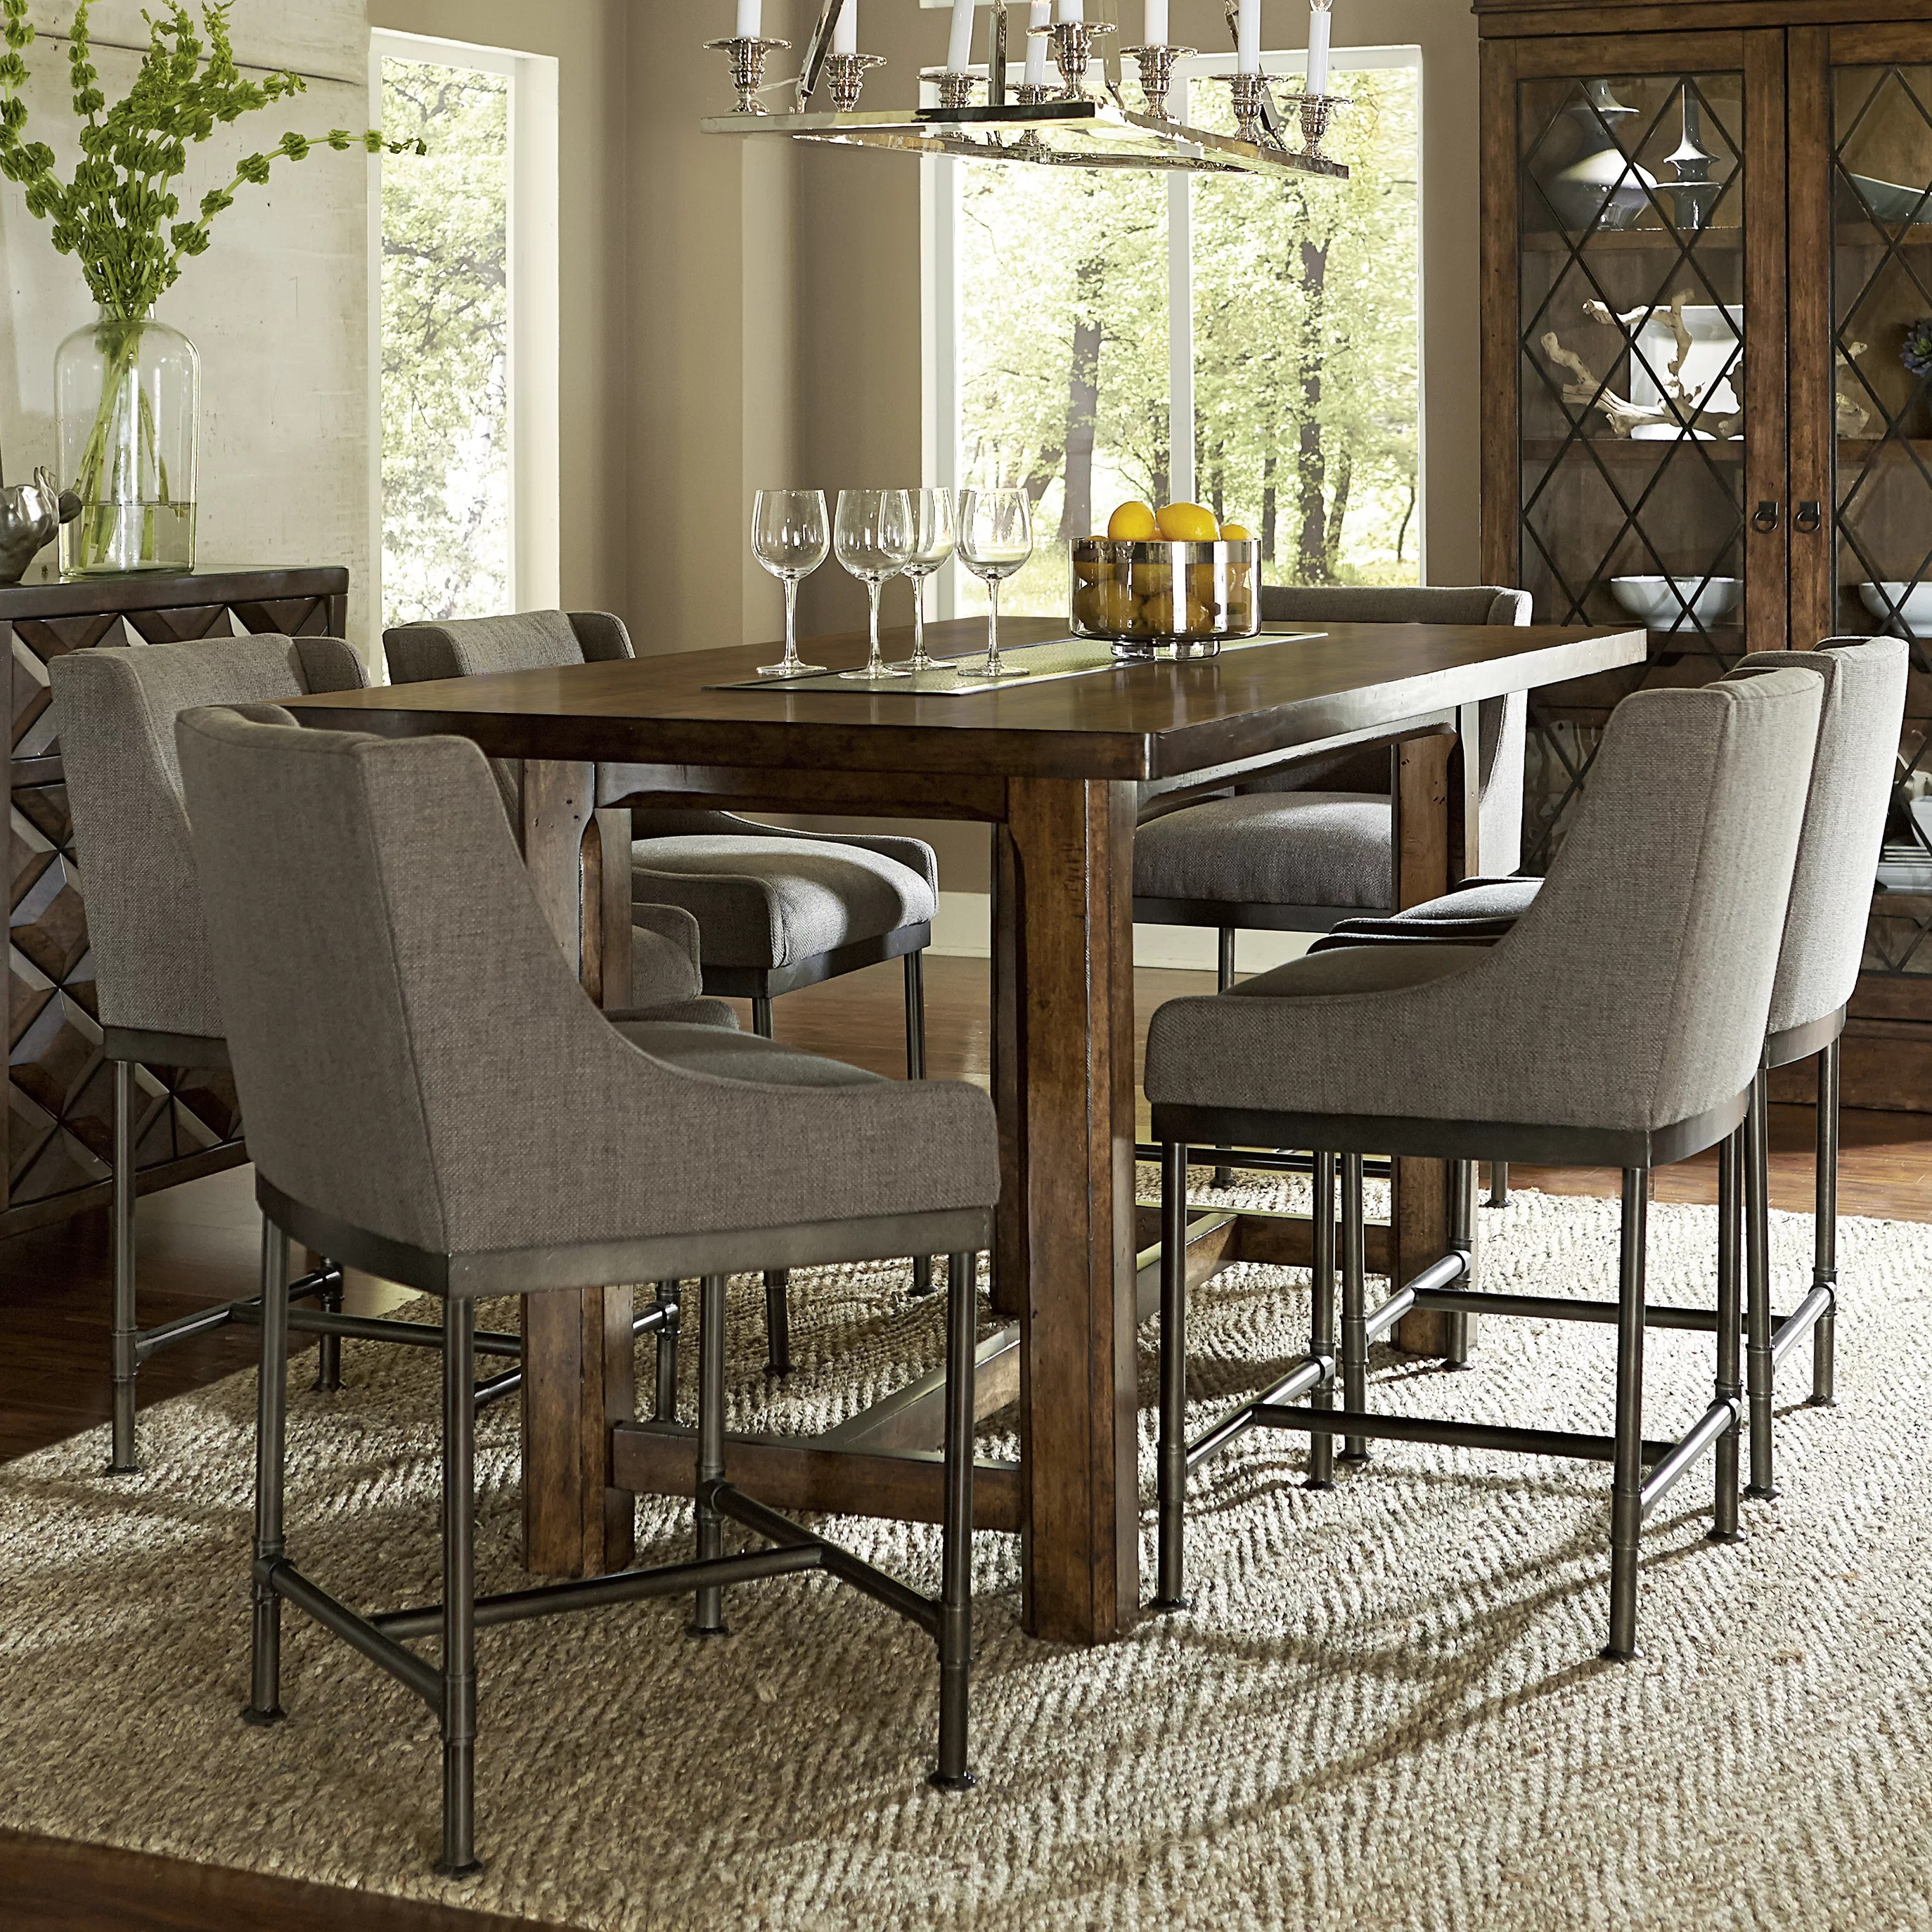 counter height kitchen tables cliff kitchen counter height kitchen tables Segula Counter Height Dining Table Allmodern